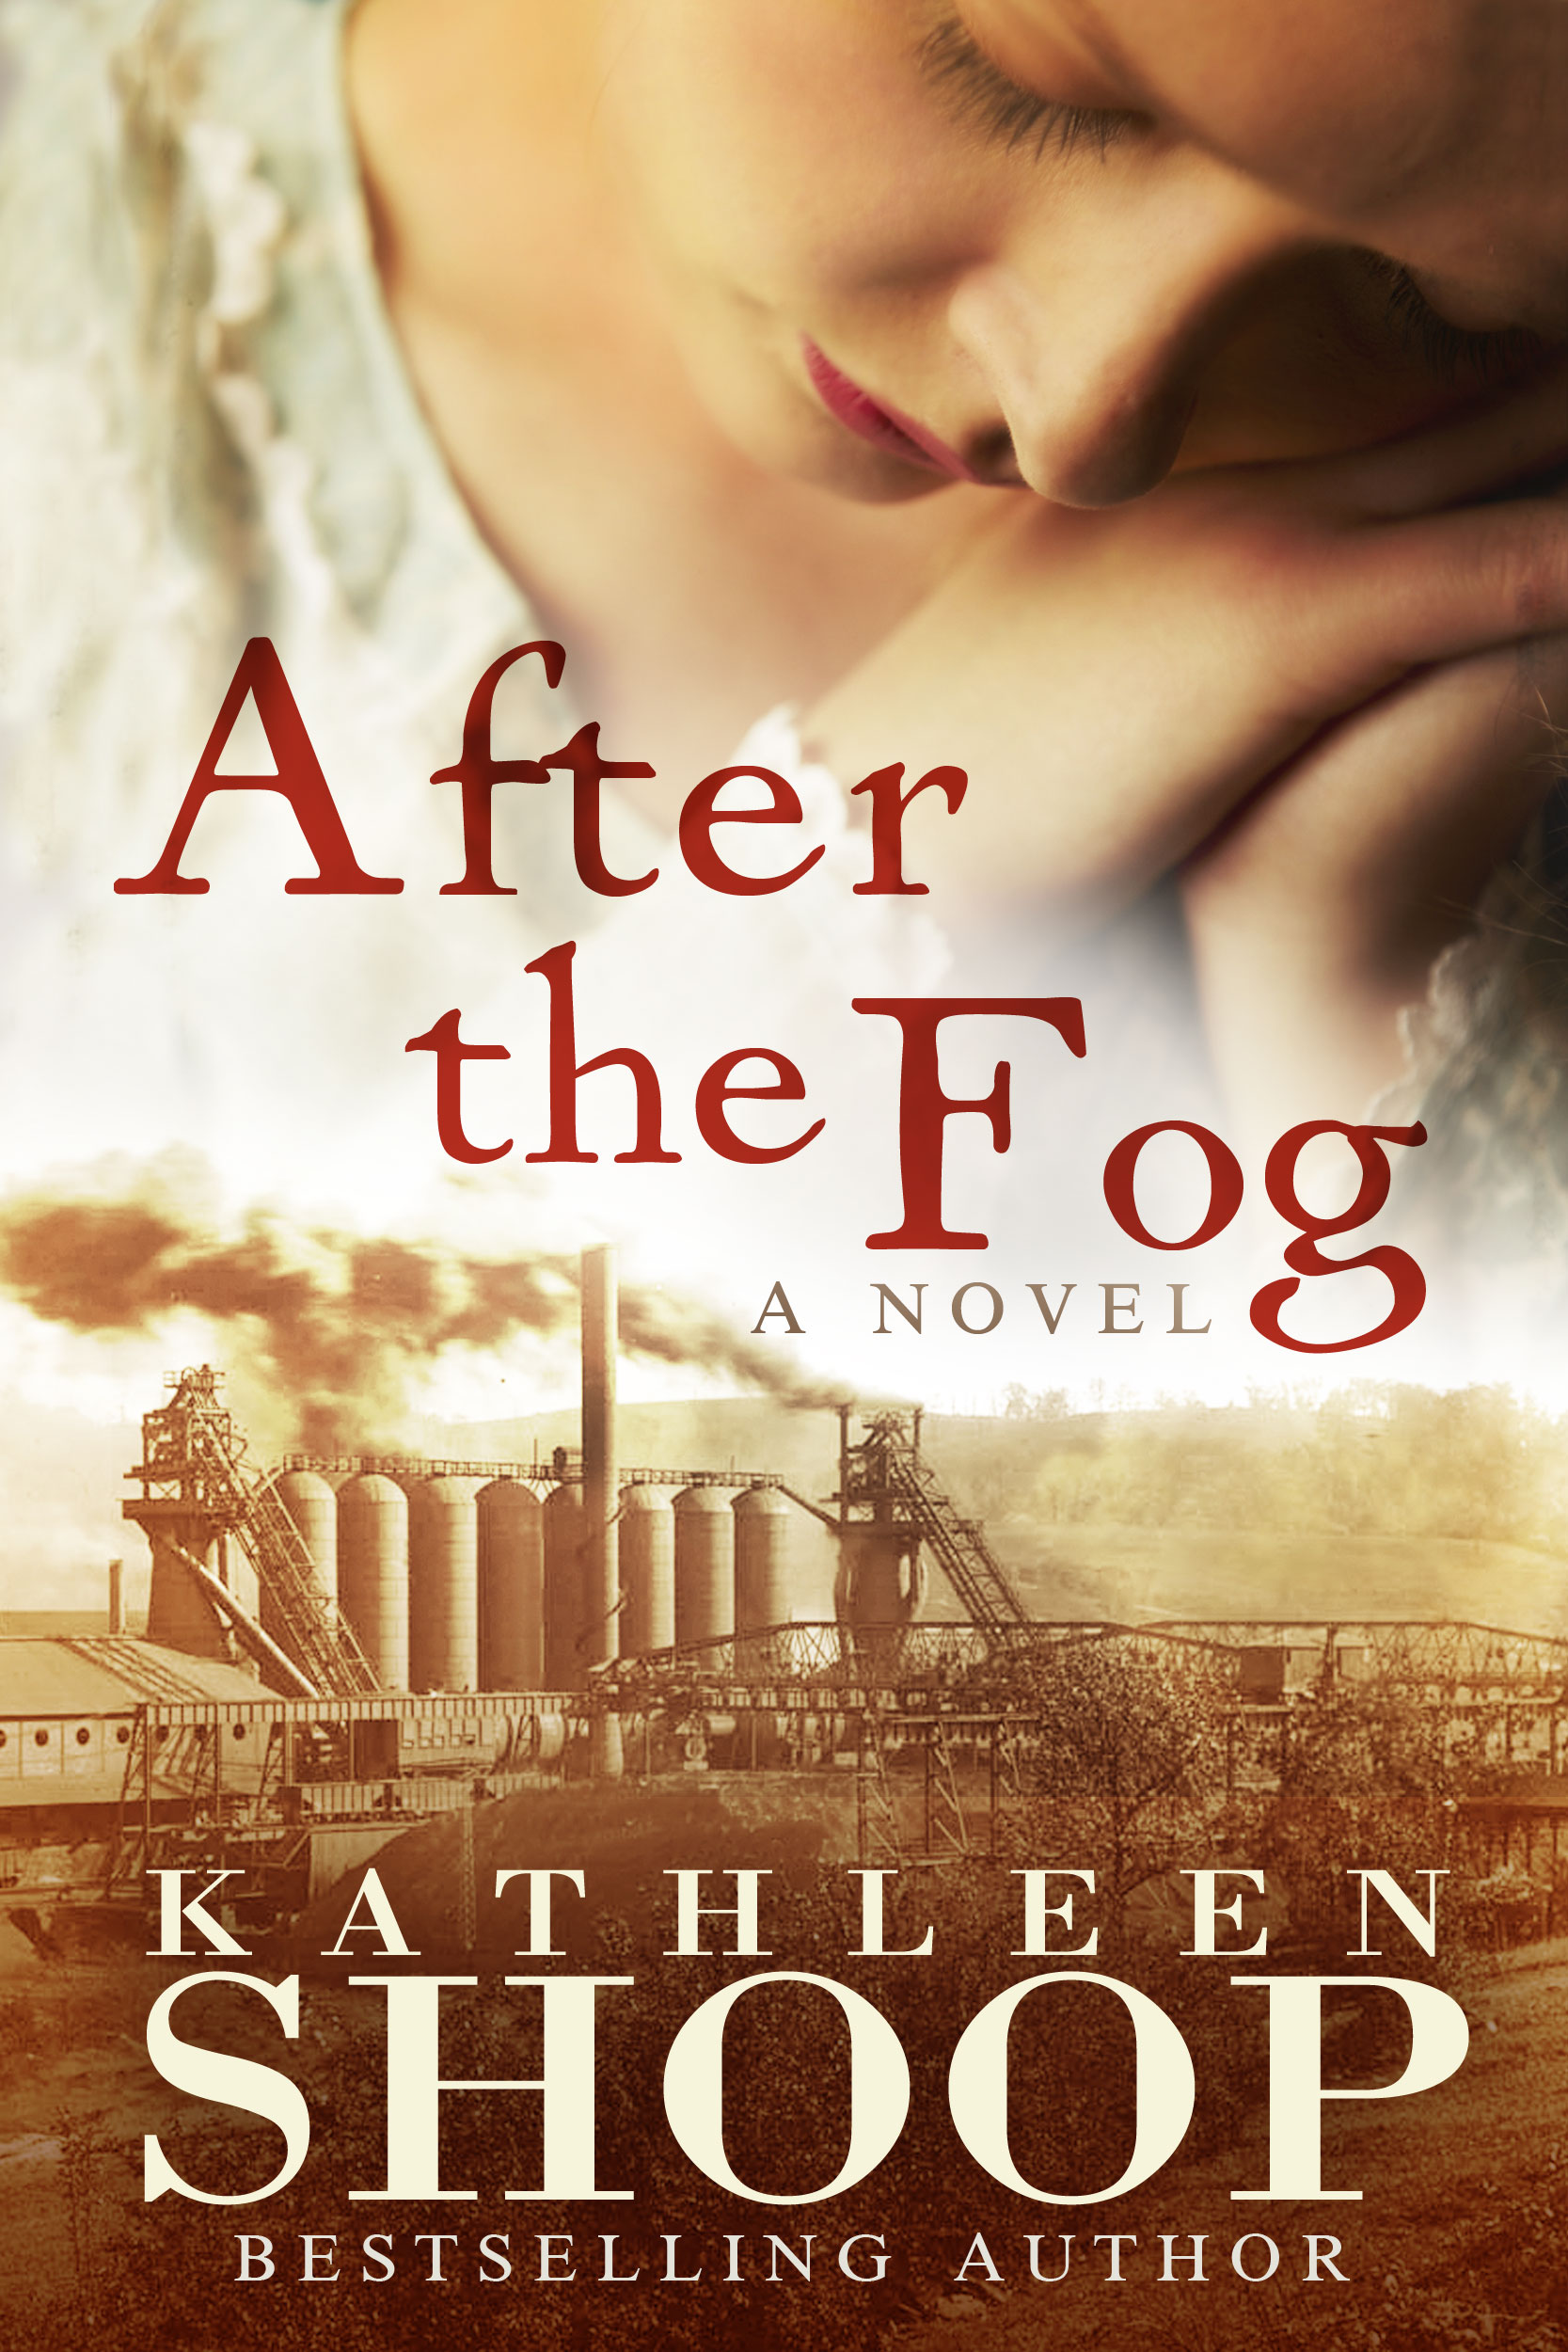 AftertheFog-amazon